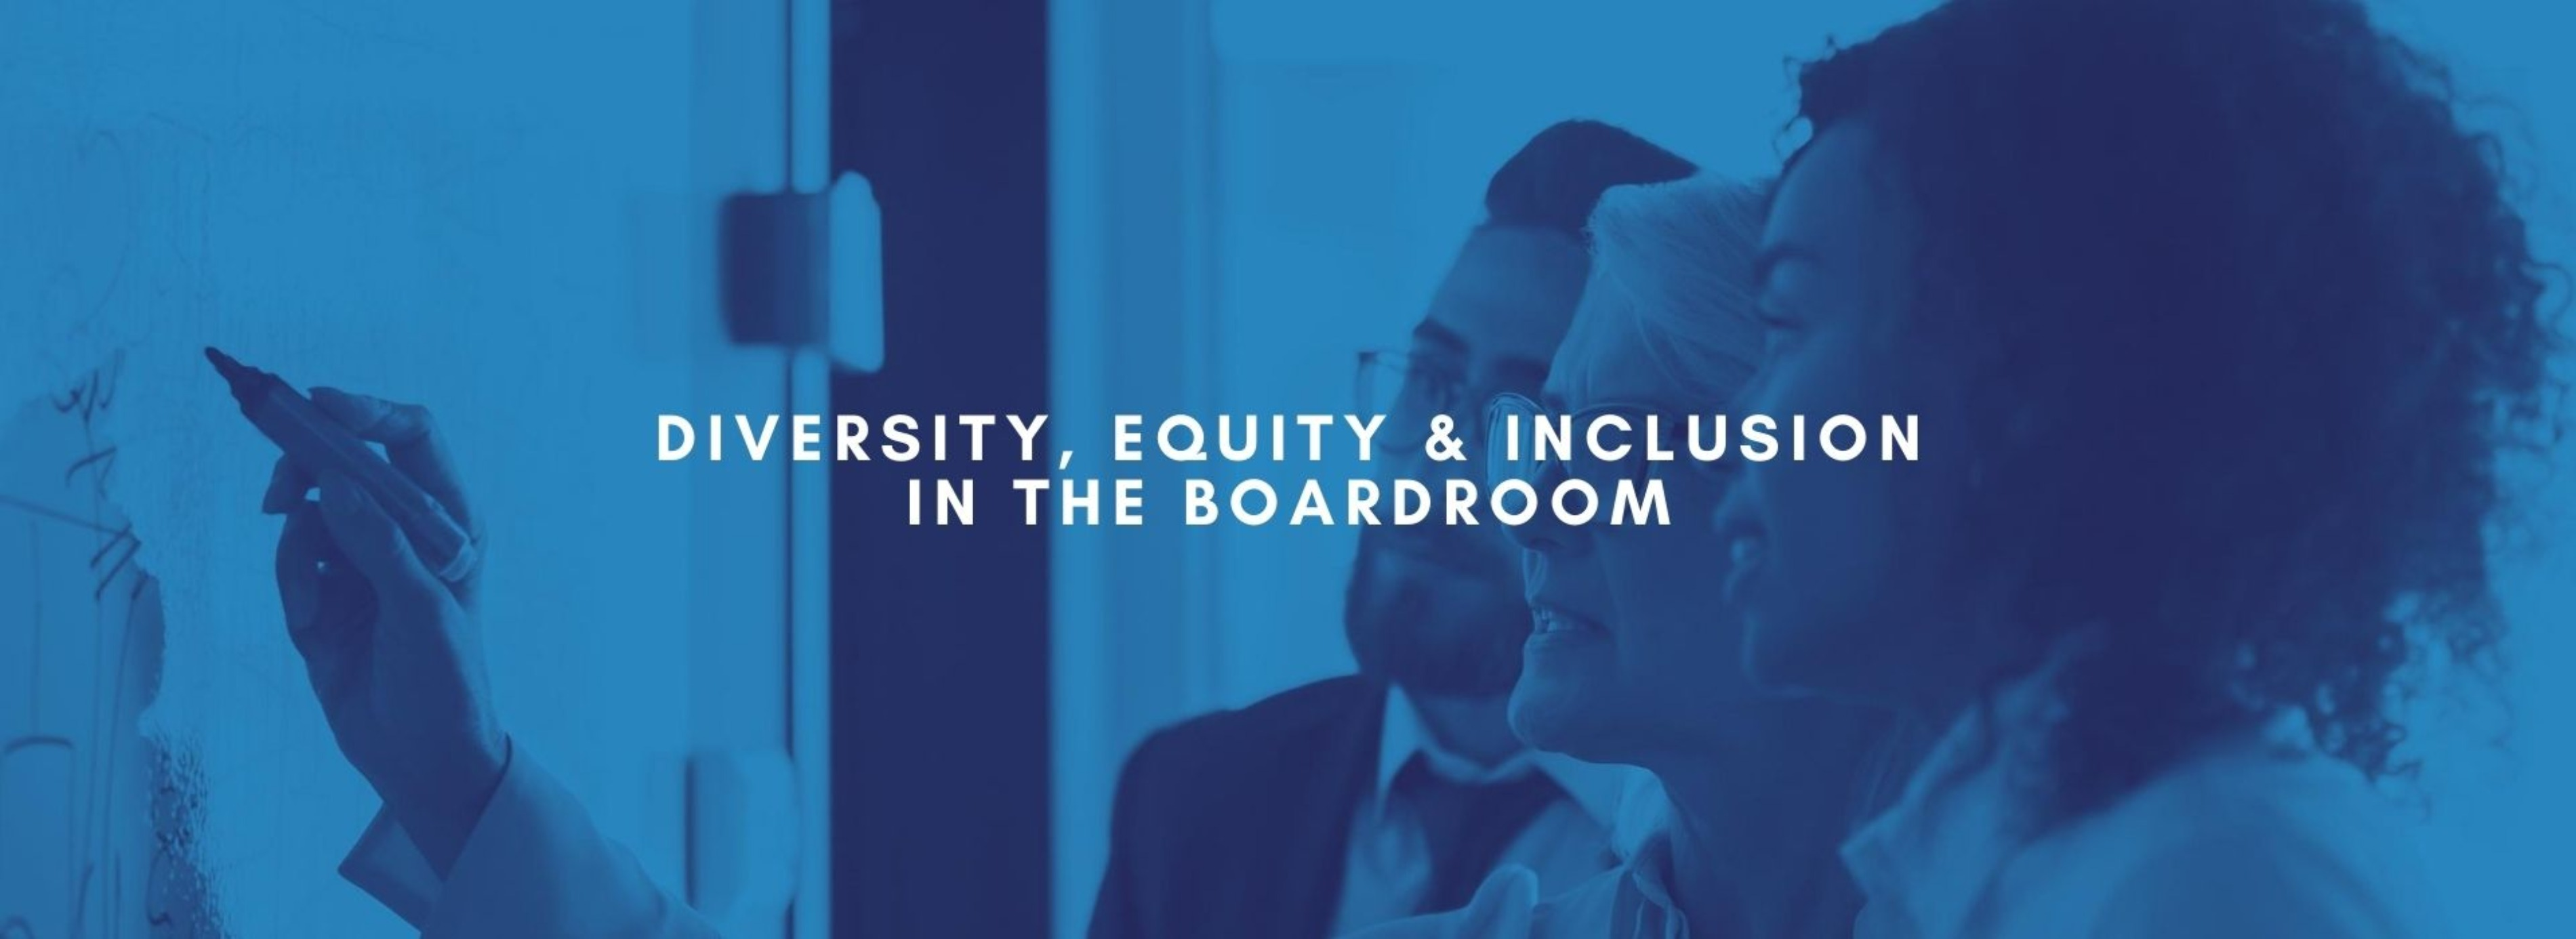 BP | Diversity, Equity & Inclusion in the Boardroom | May 4th, 2021